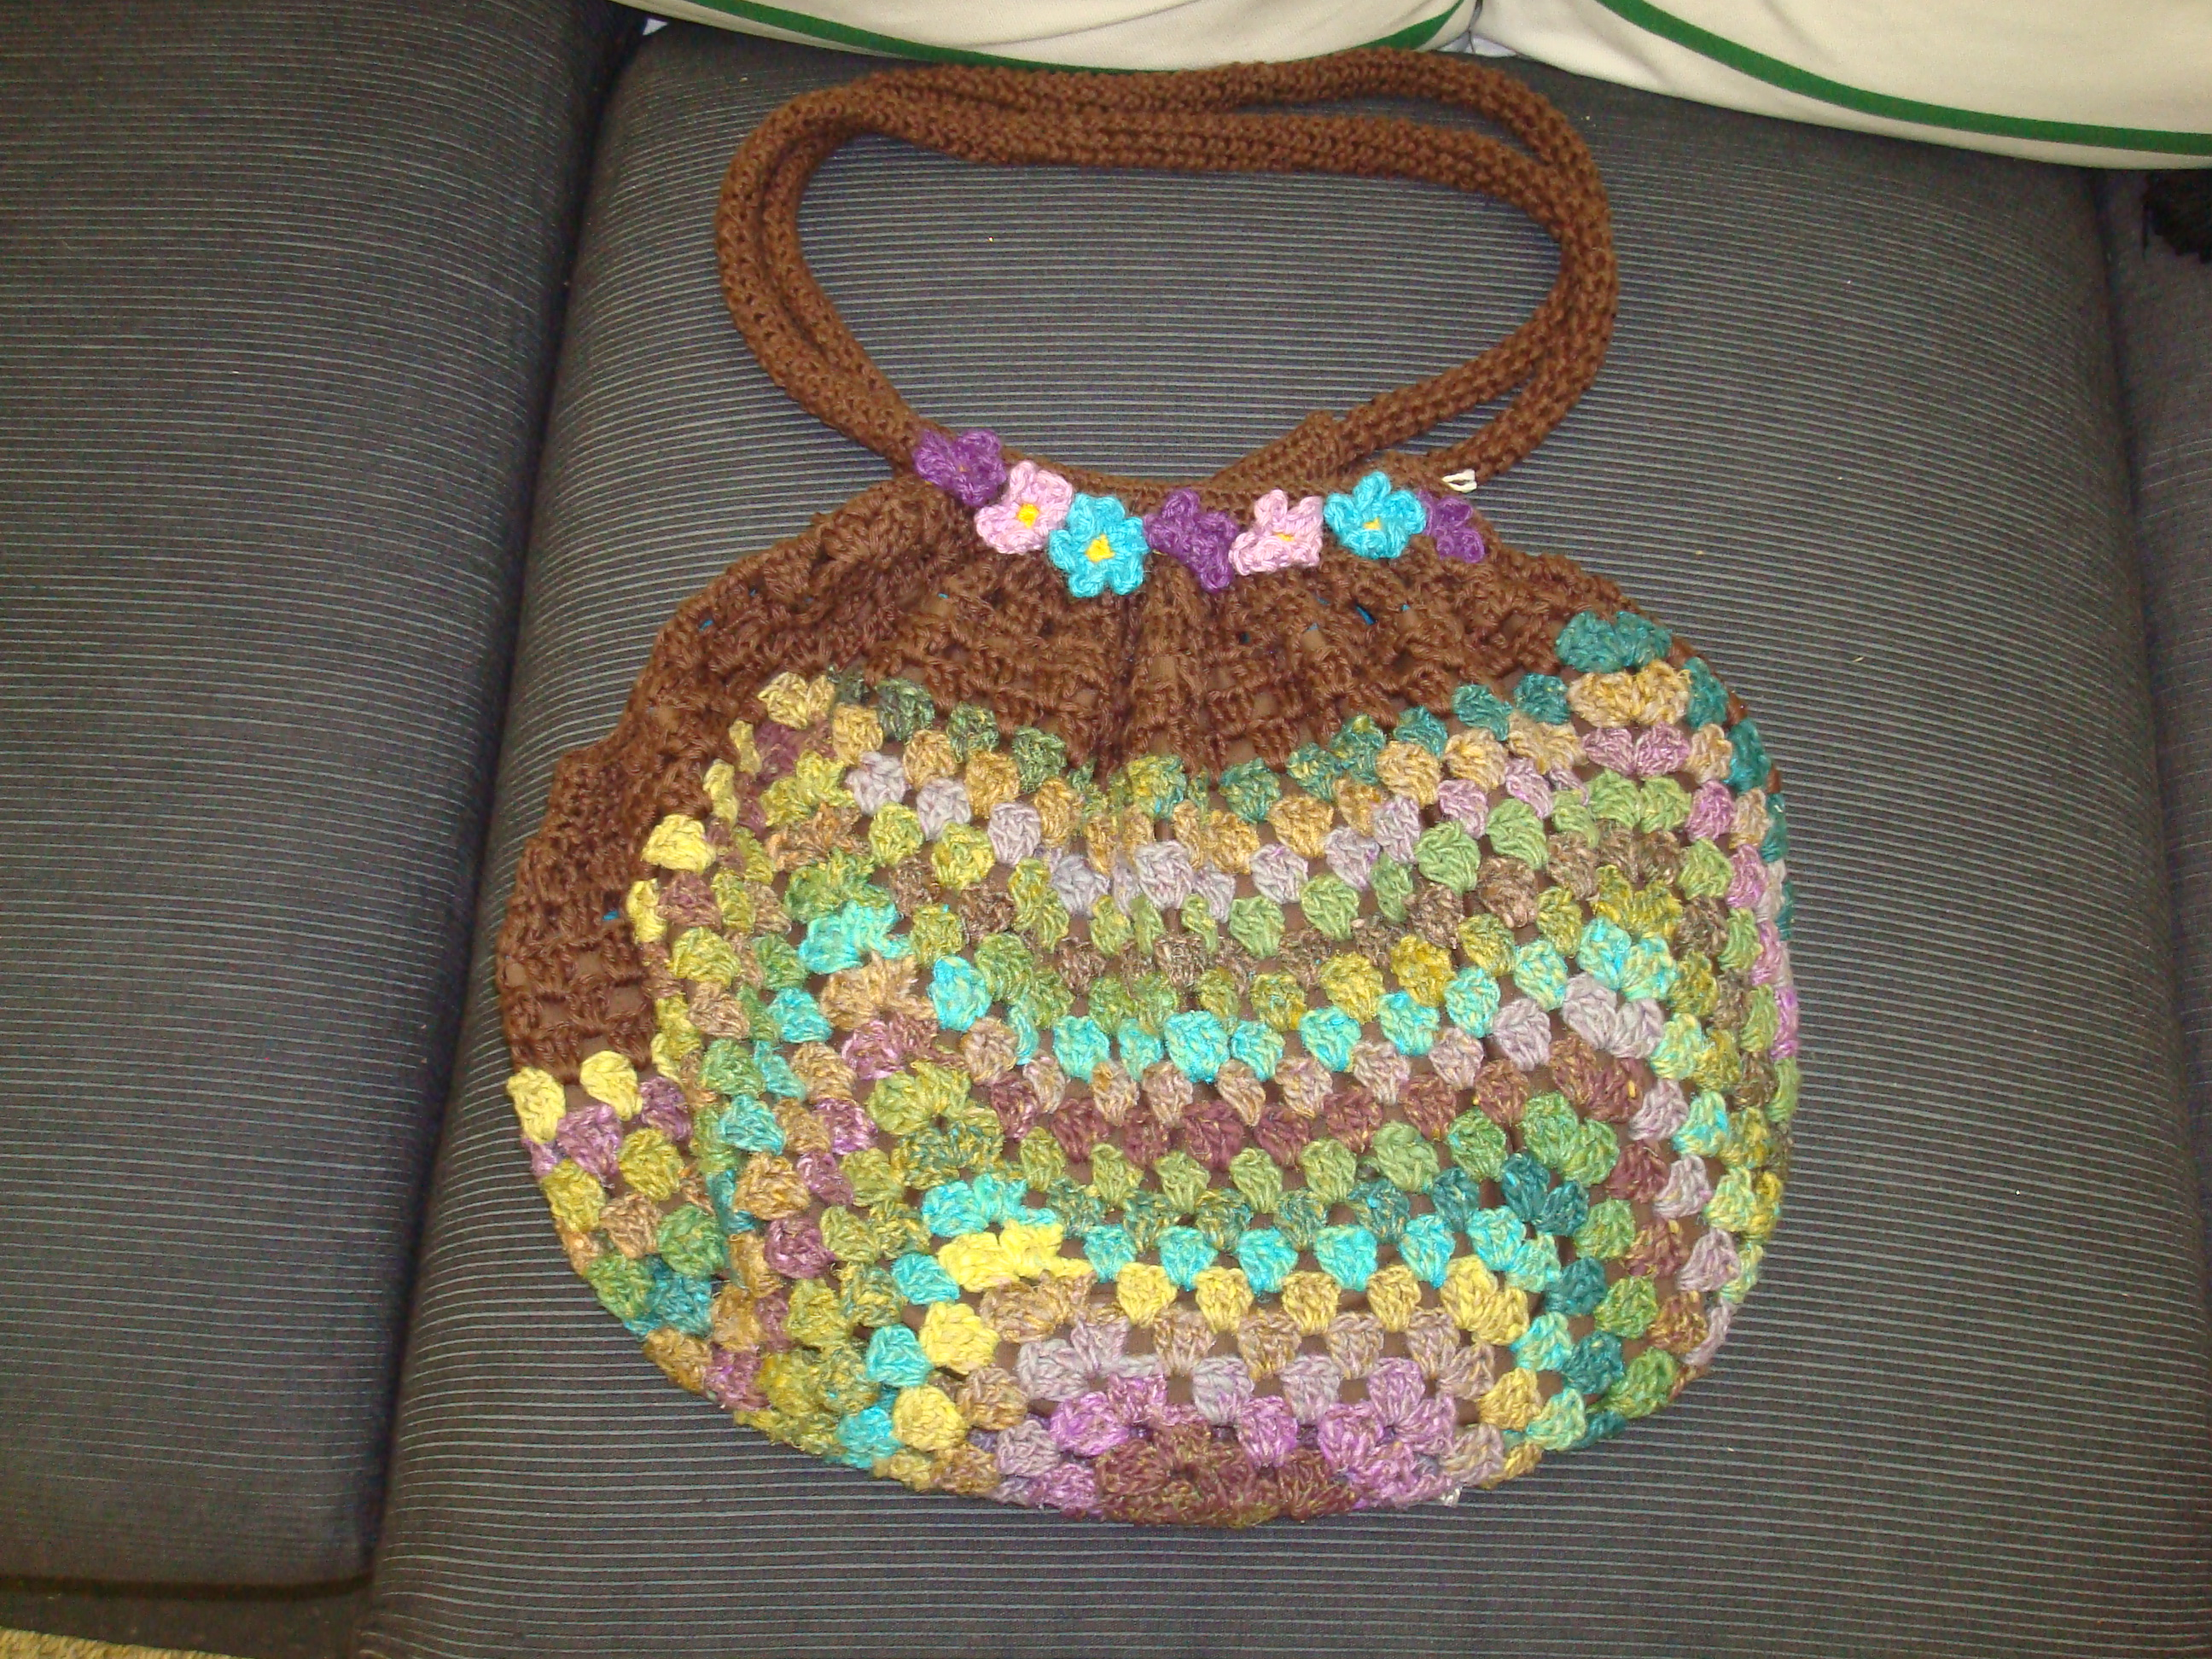 My Version of the Granny Square Striped Bag